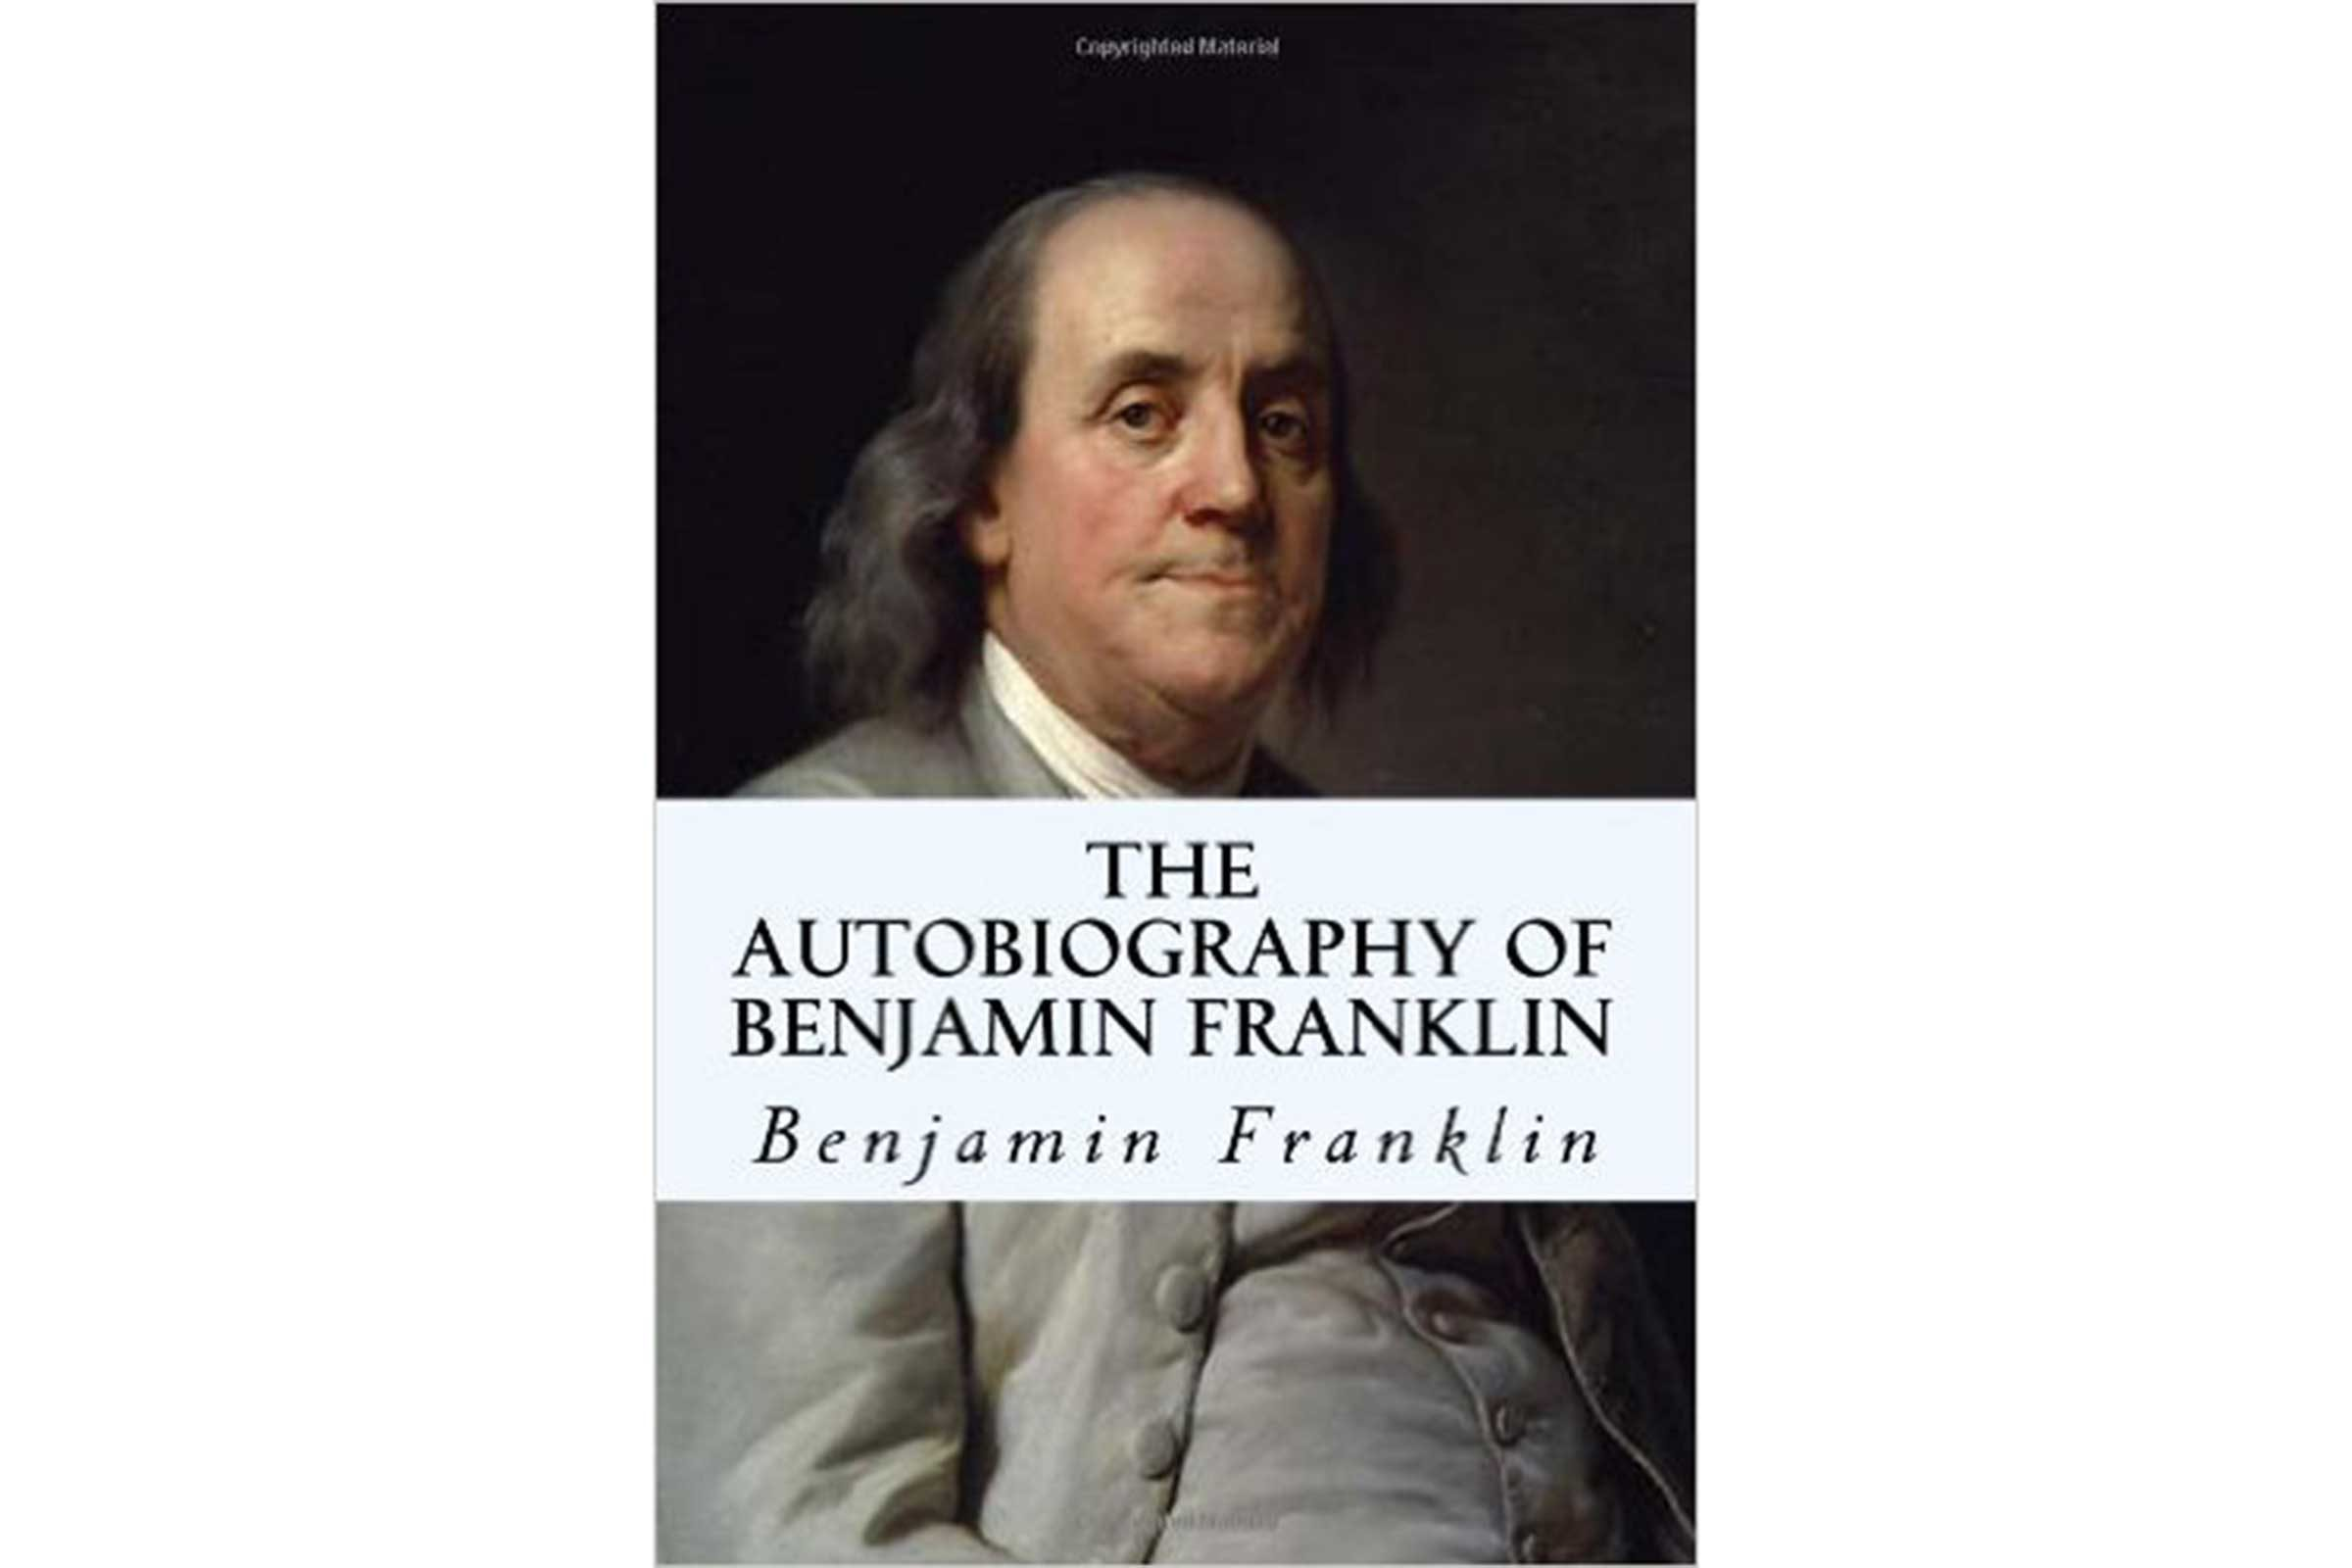 frederick douglass and benjamin franklin essays A summary of analysis in benjamin franklin's the perfect for acing essays but it is safe to say that such classics as frederick douglass' narrative and.